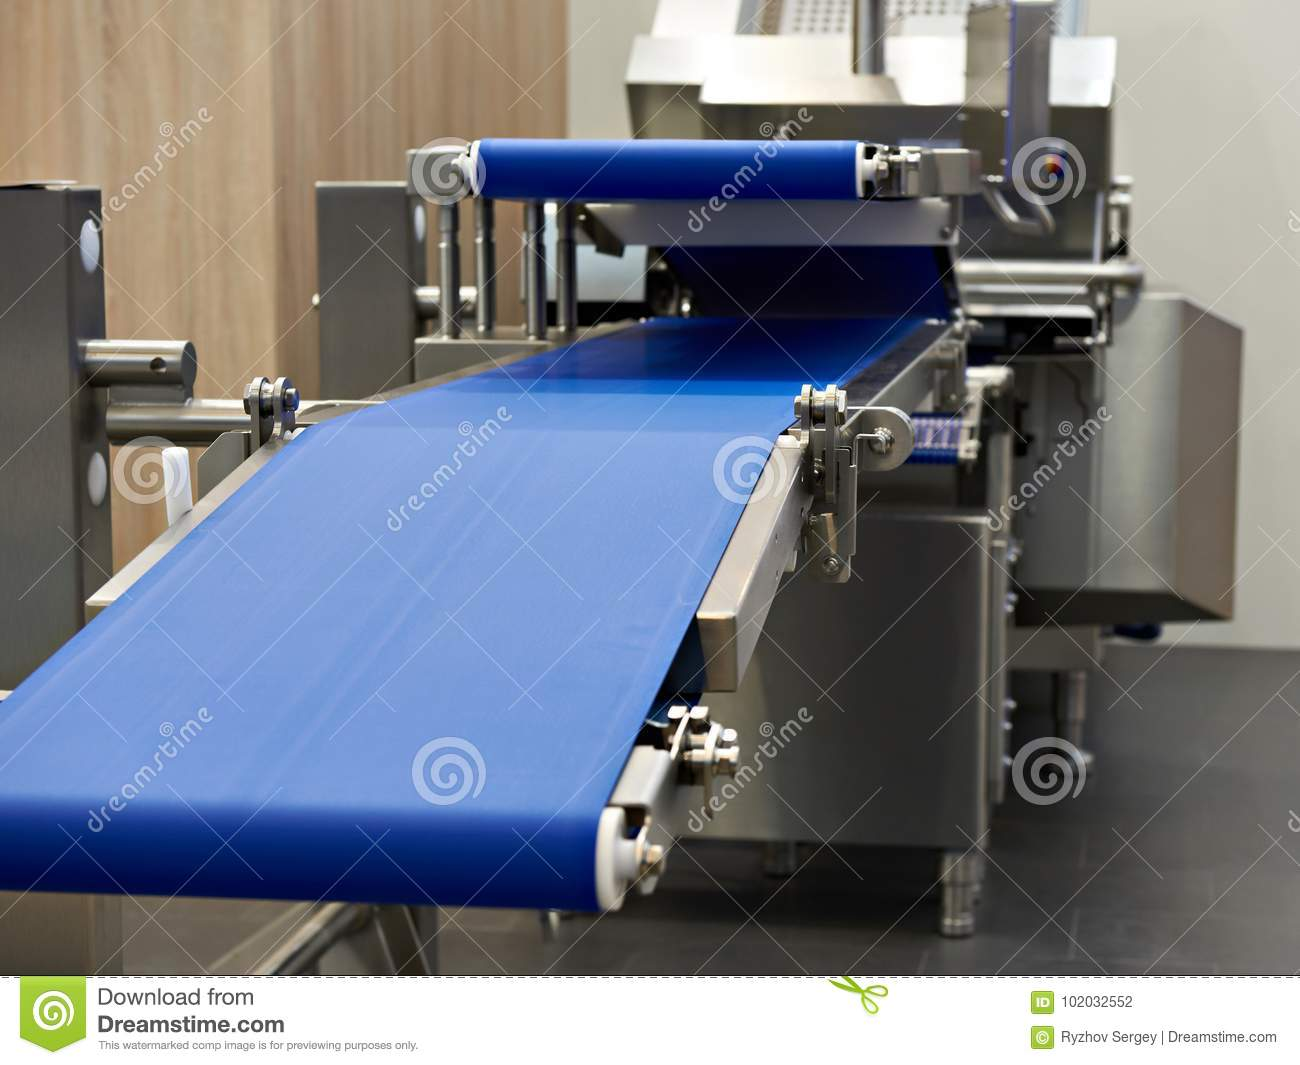 Conveyor and slicer for food industry